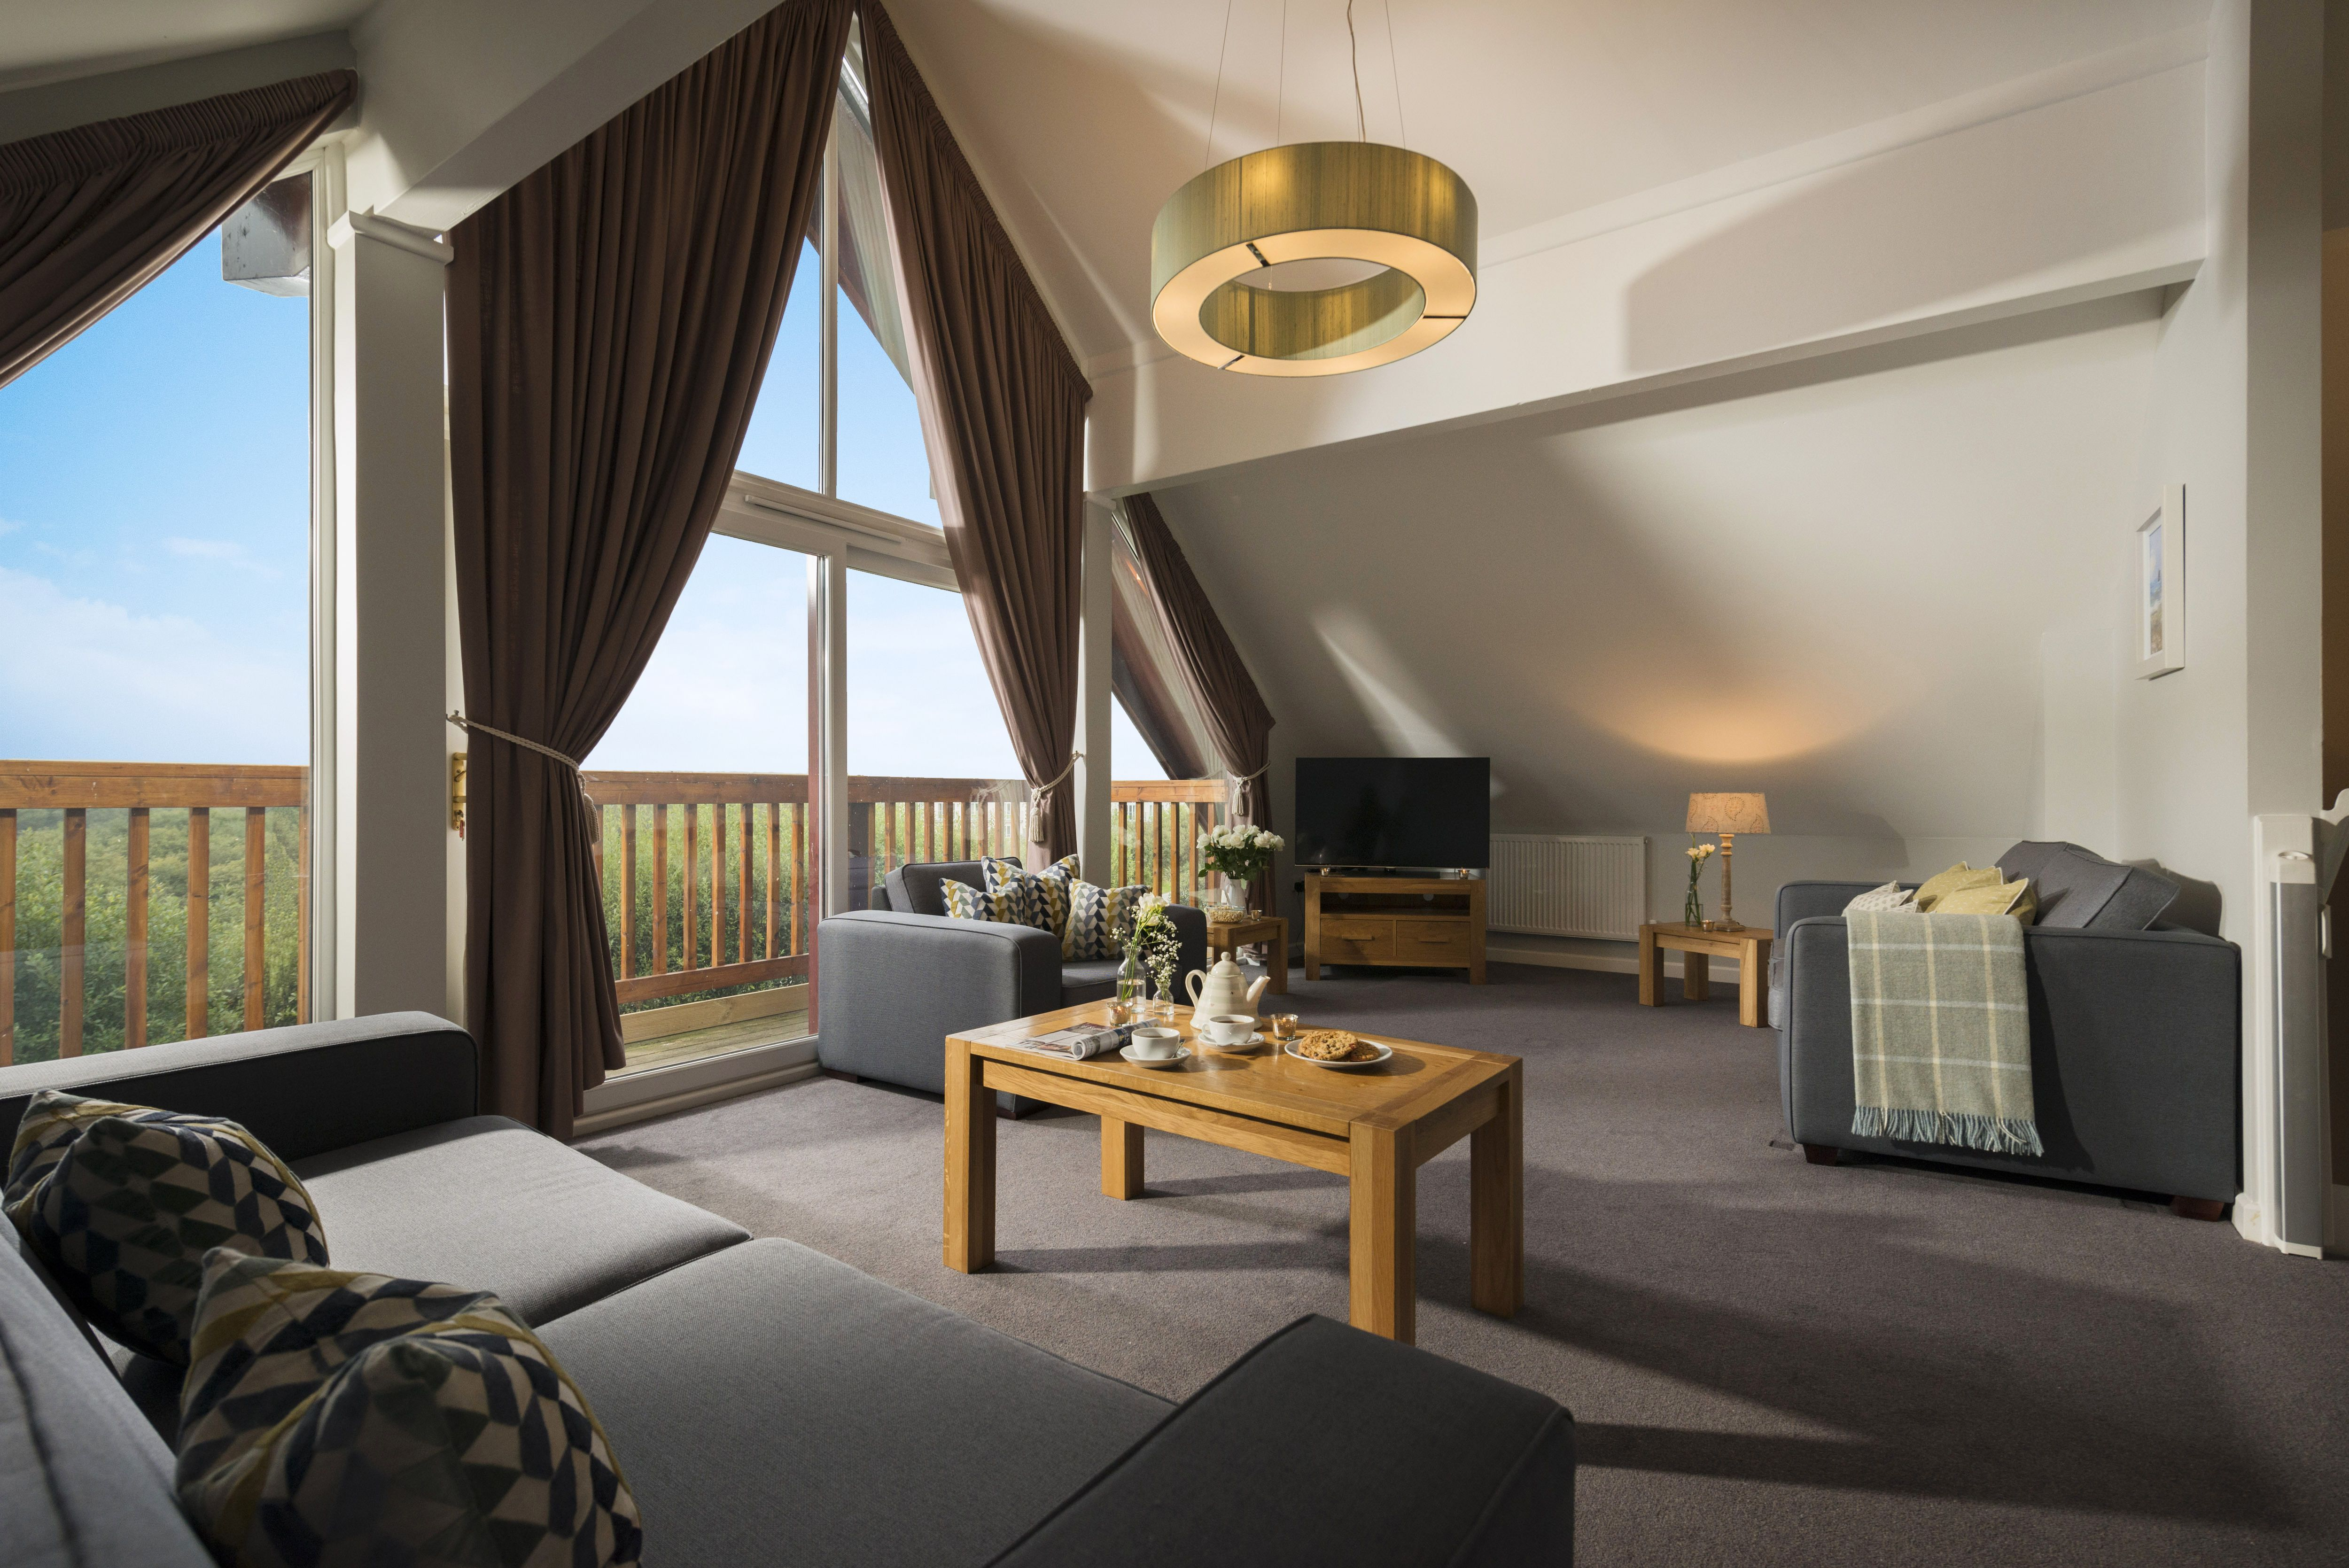 . Superior Lodge 4 Lounge  Retallack Resort   Spa   A selection of our